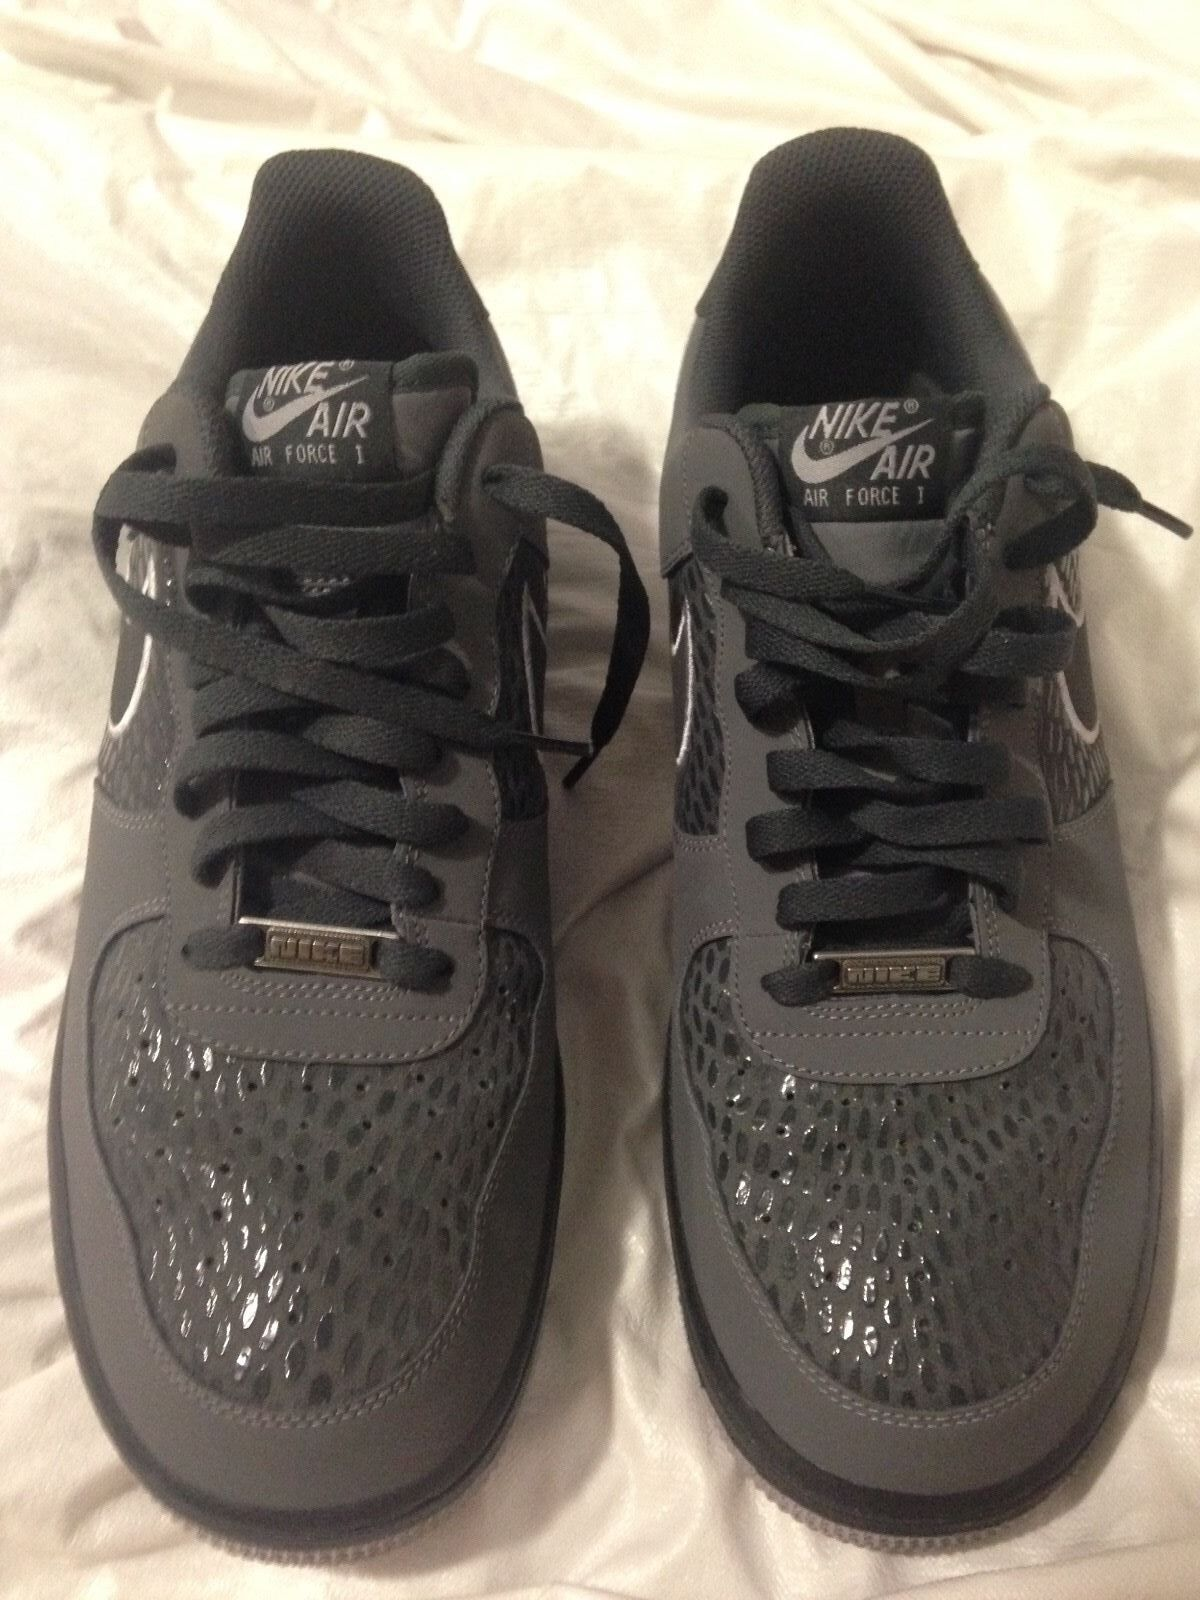 The most popular shoes for men and women Nike Air Force 1 Scales Pack Grey/Anthracite/Wolf Grey 488298-044 Comfortable